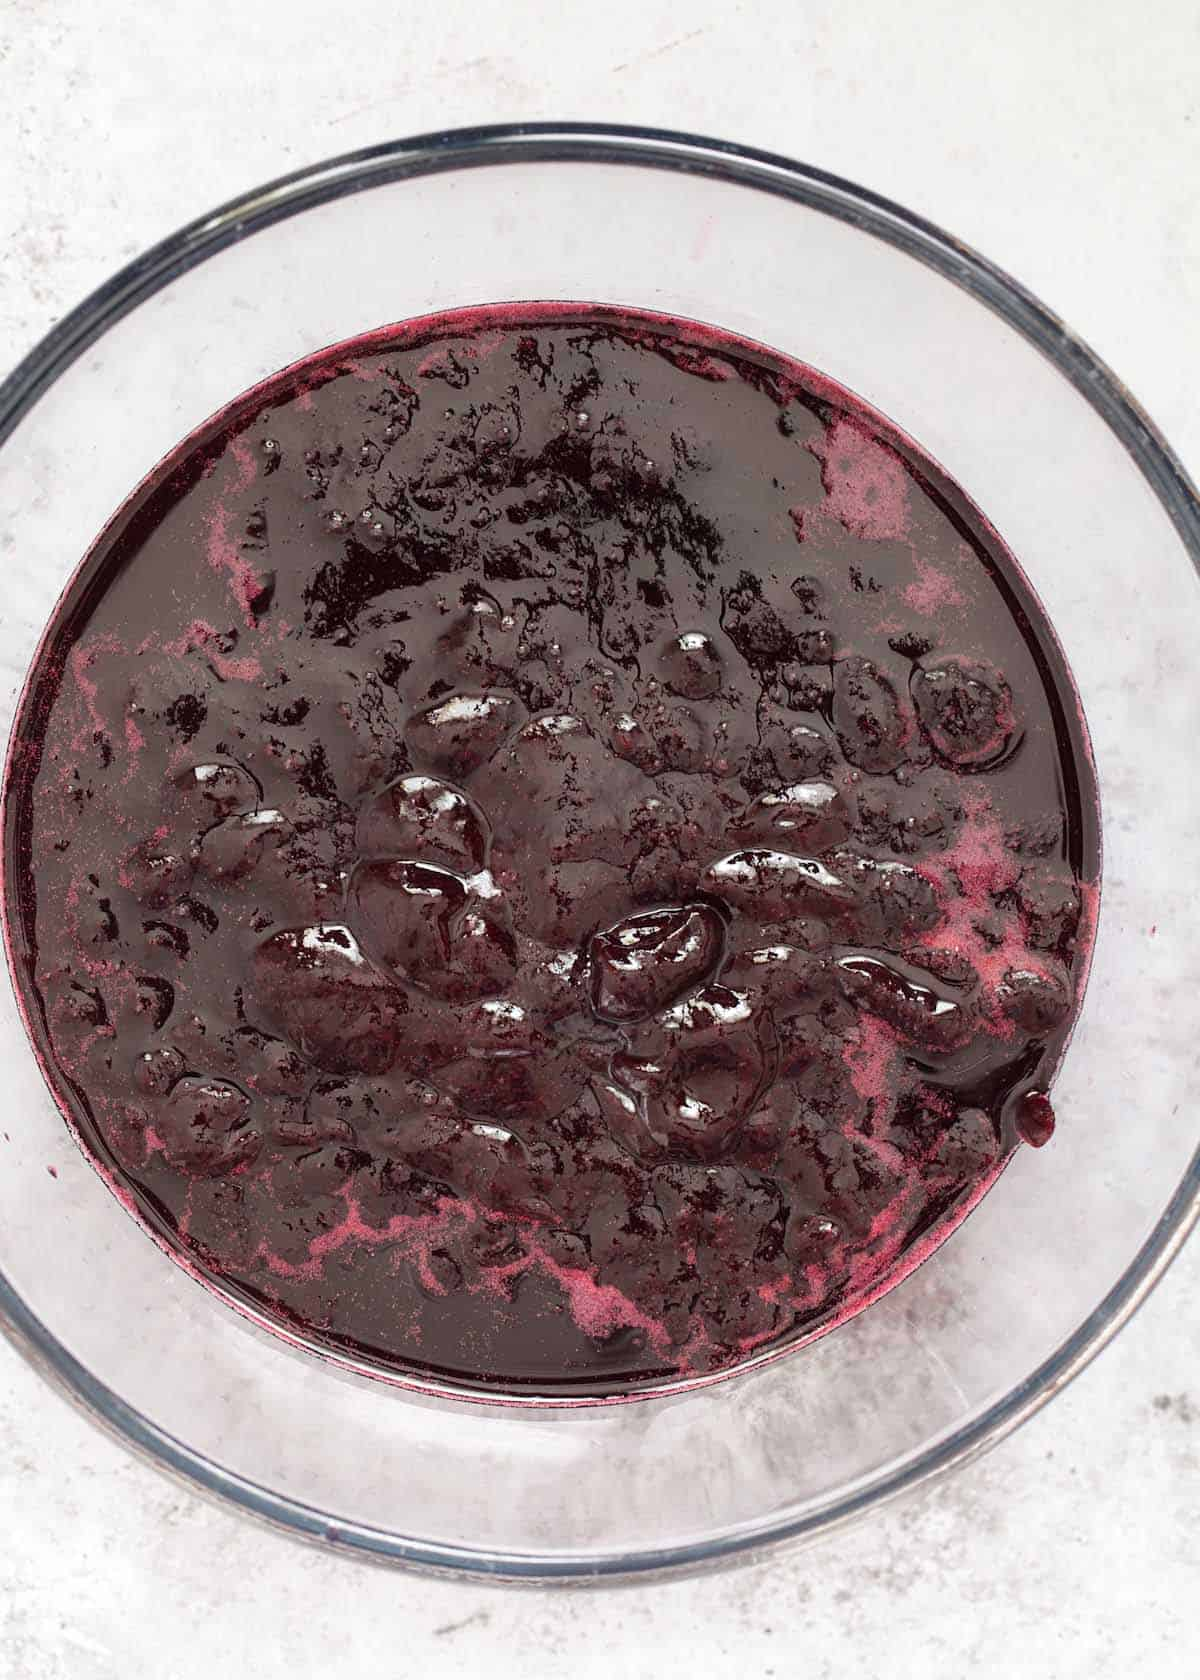 Blackcurrant syrup after being strained